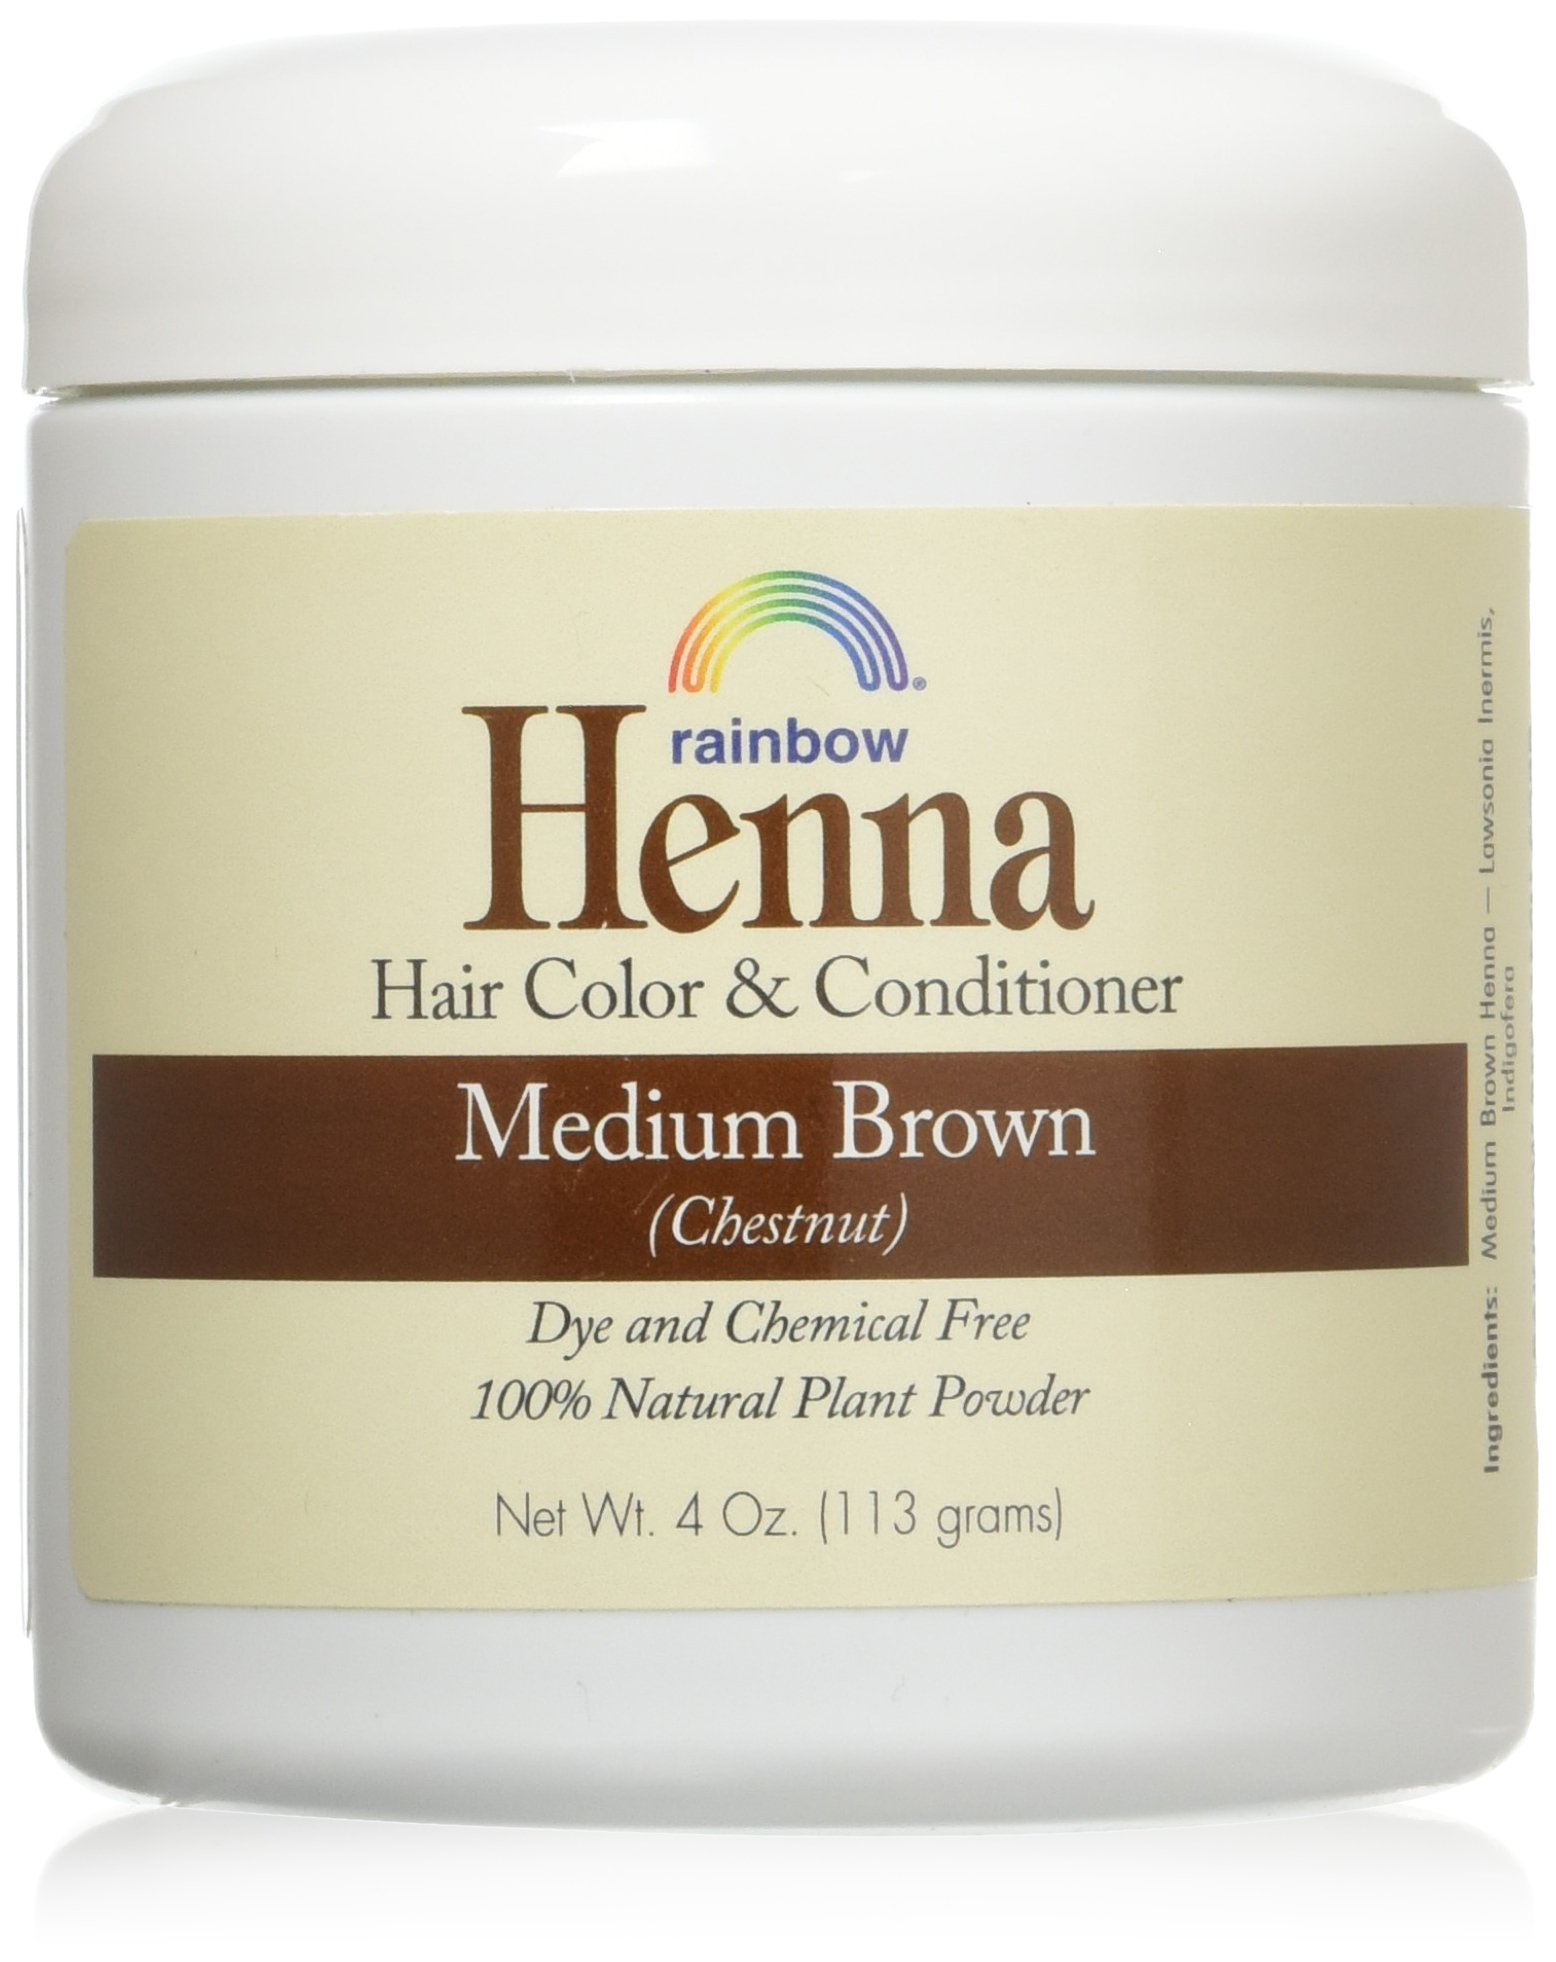 Henna (Persian) - Med Brown (Chestnut), 4 oz (pack of 2) by Henna